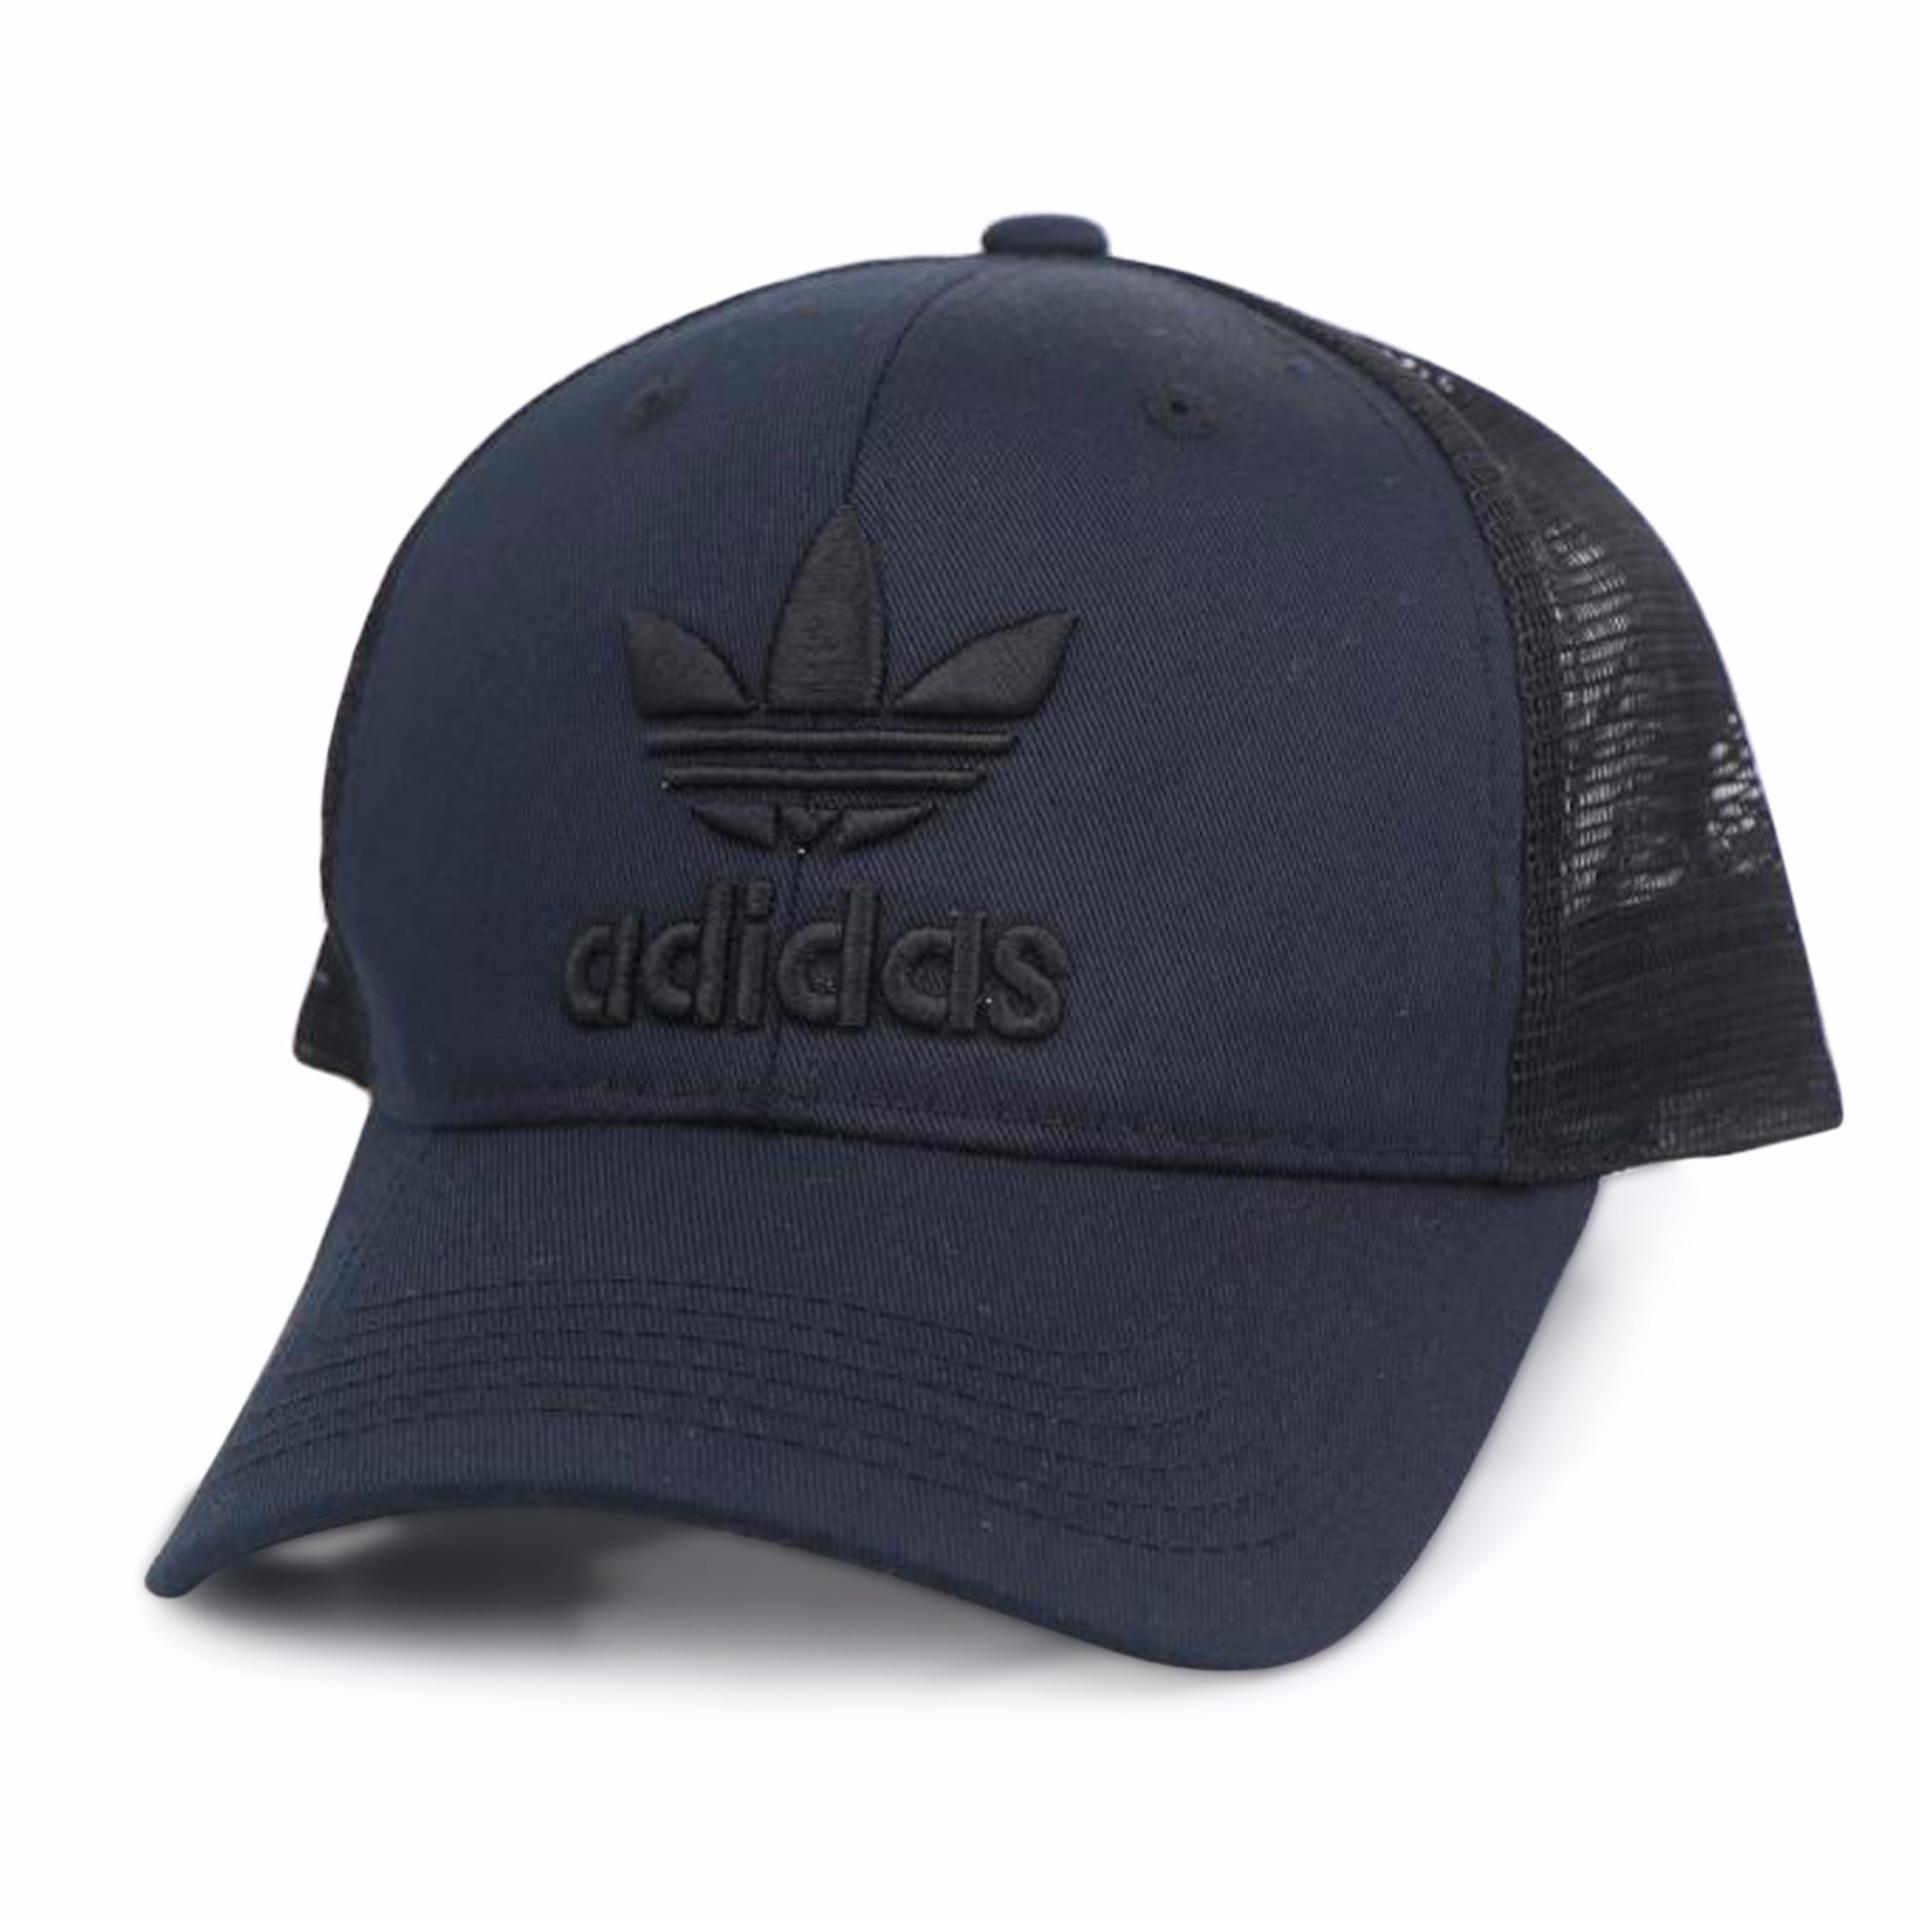 cecf93037 Black Logo Net Adidas Curved Cap For Men